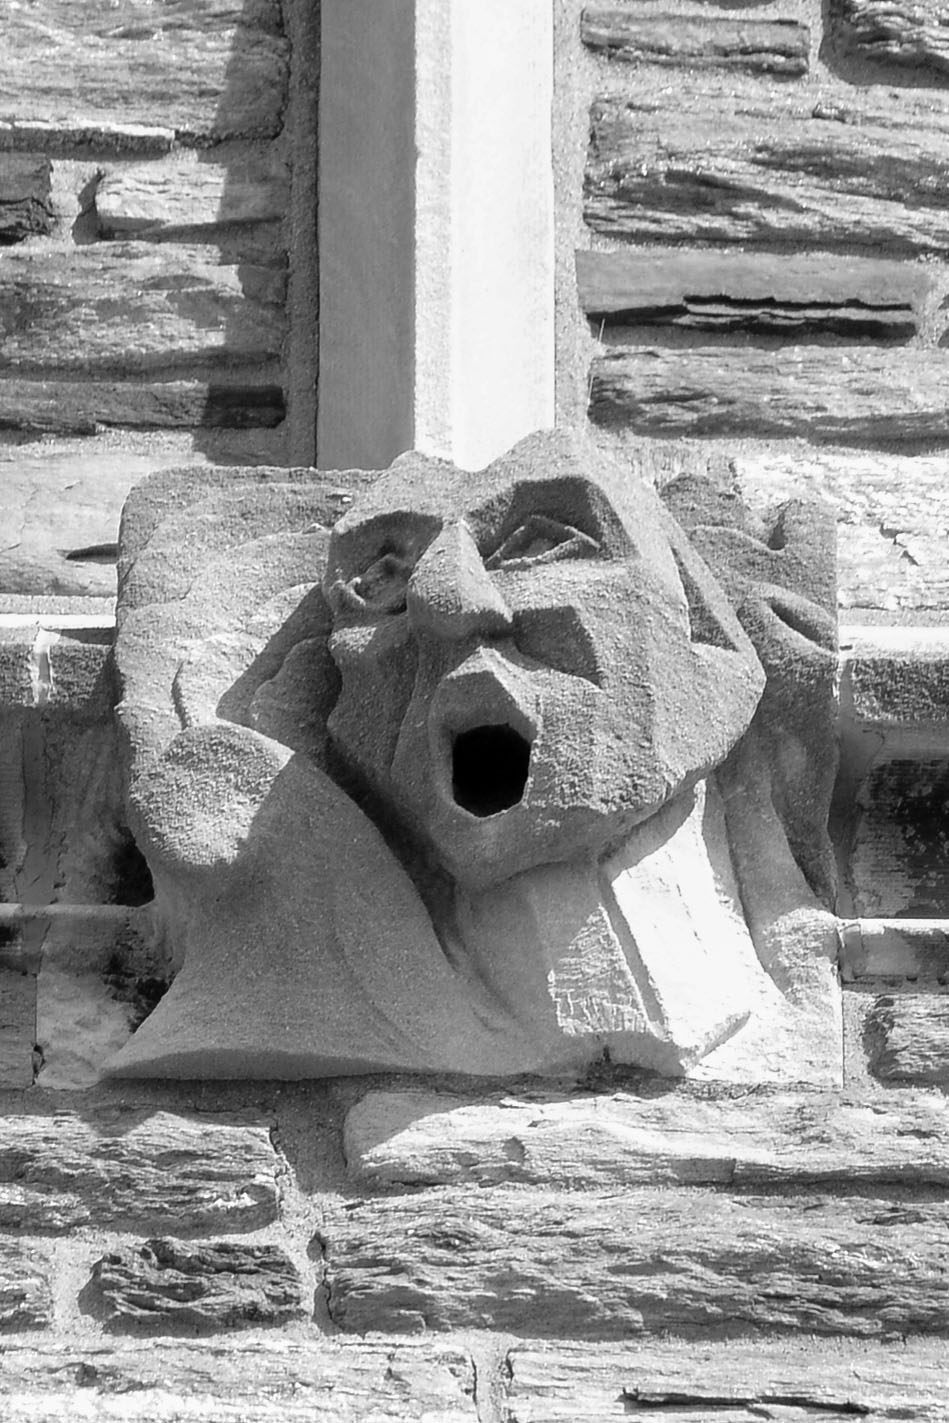 Barbelin hall turns ninety post learning commons and drexel modern art a human face is depicted reduced to its basic form and positioned over a detail of a classical architectural capital symbolizing the evolution biocorpaavc Images